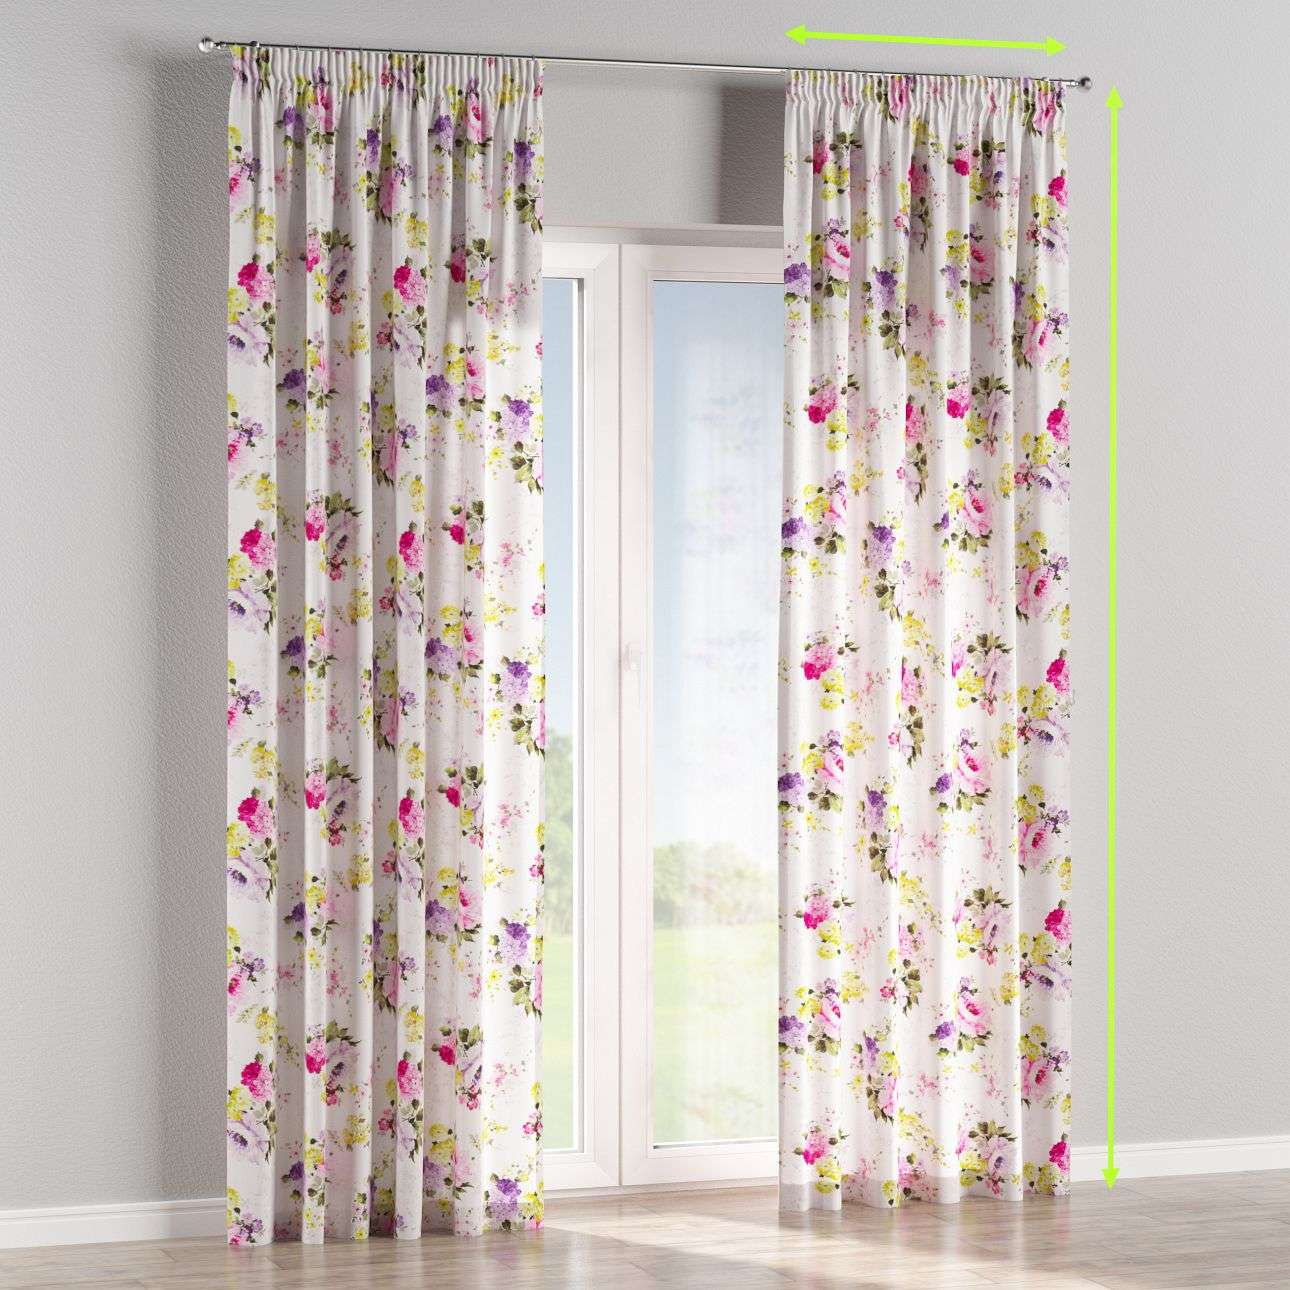 Pencil pleat lined curtains in collection Monet, fabric: 140-00